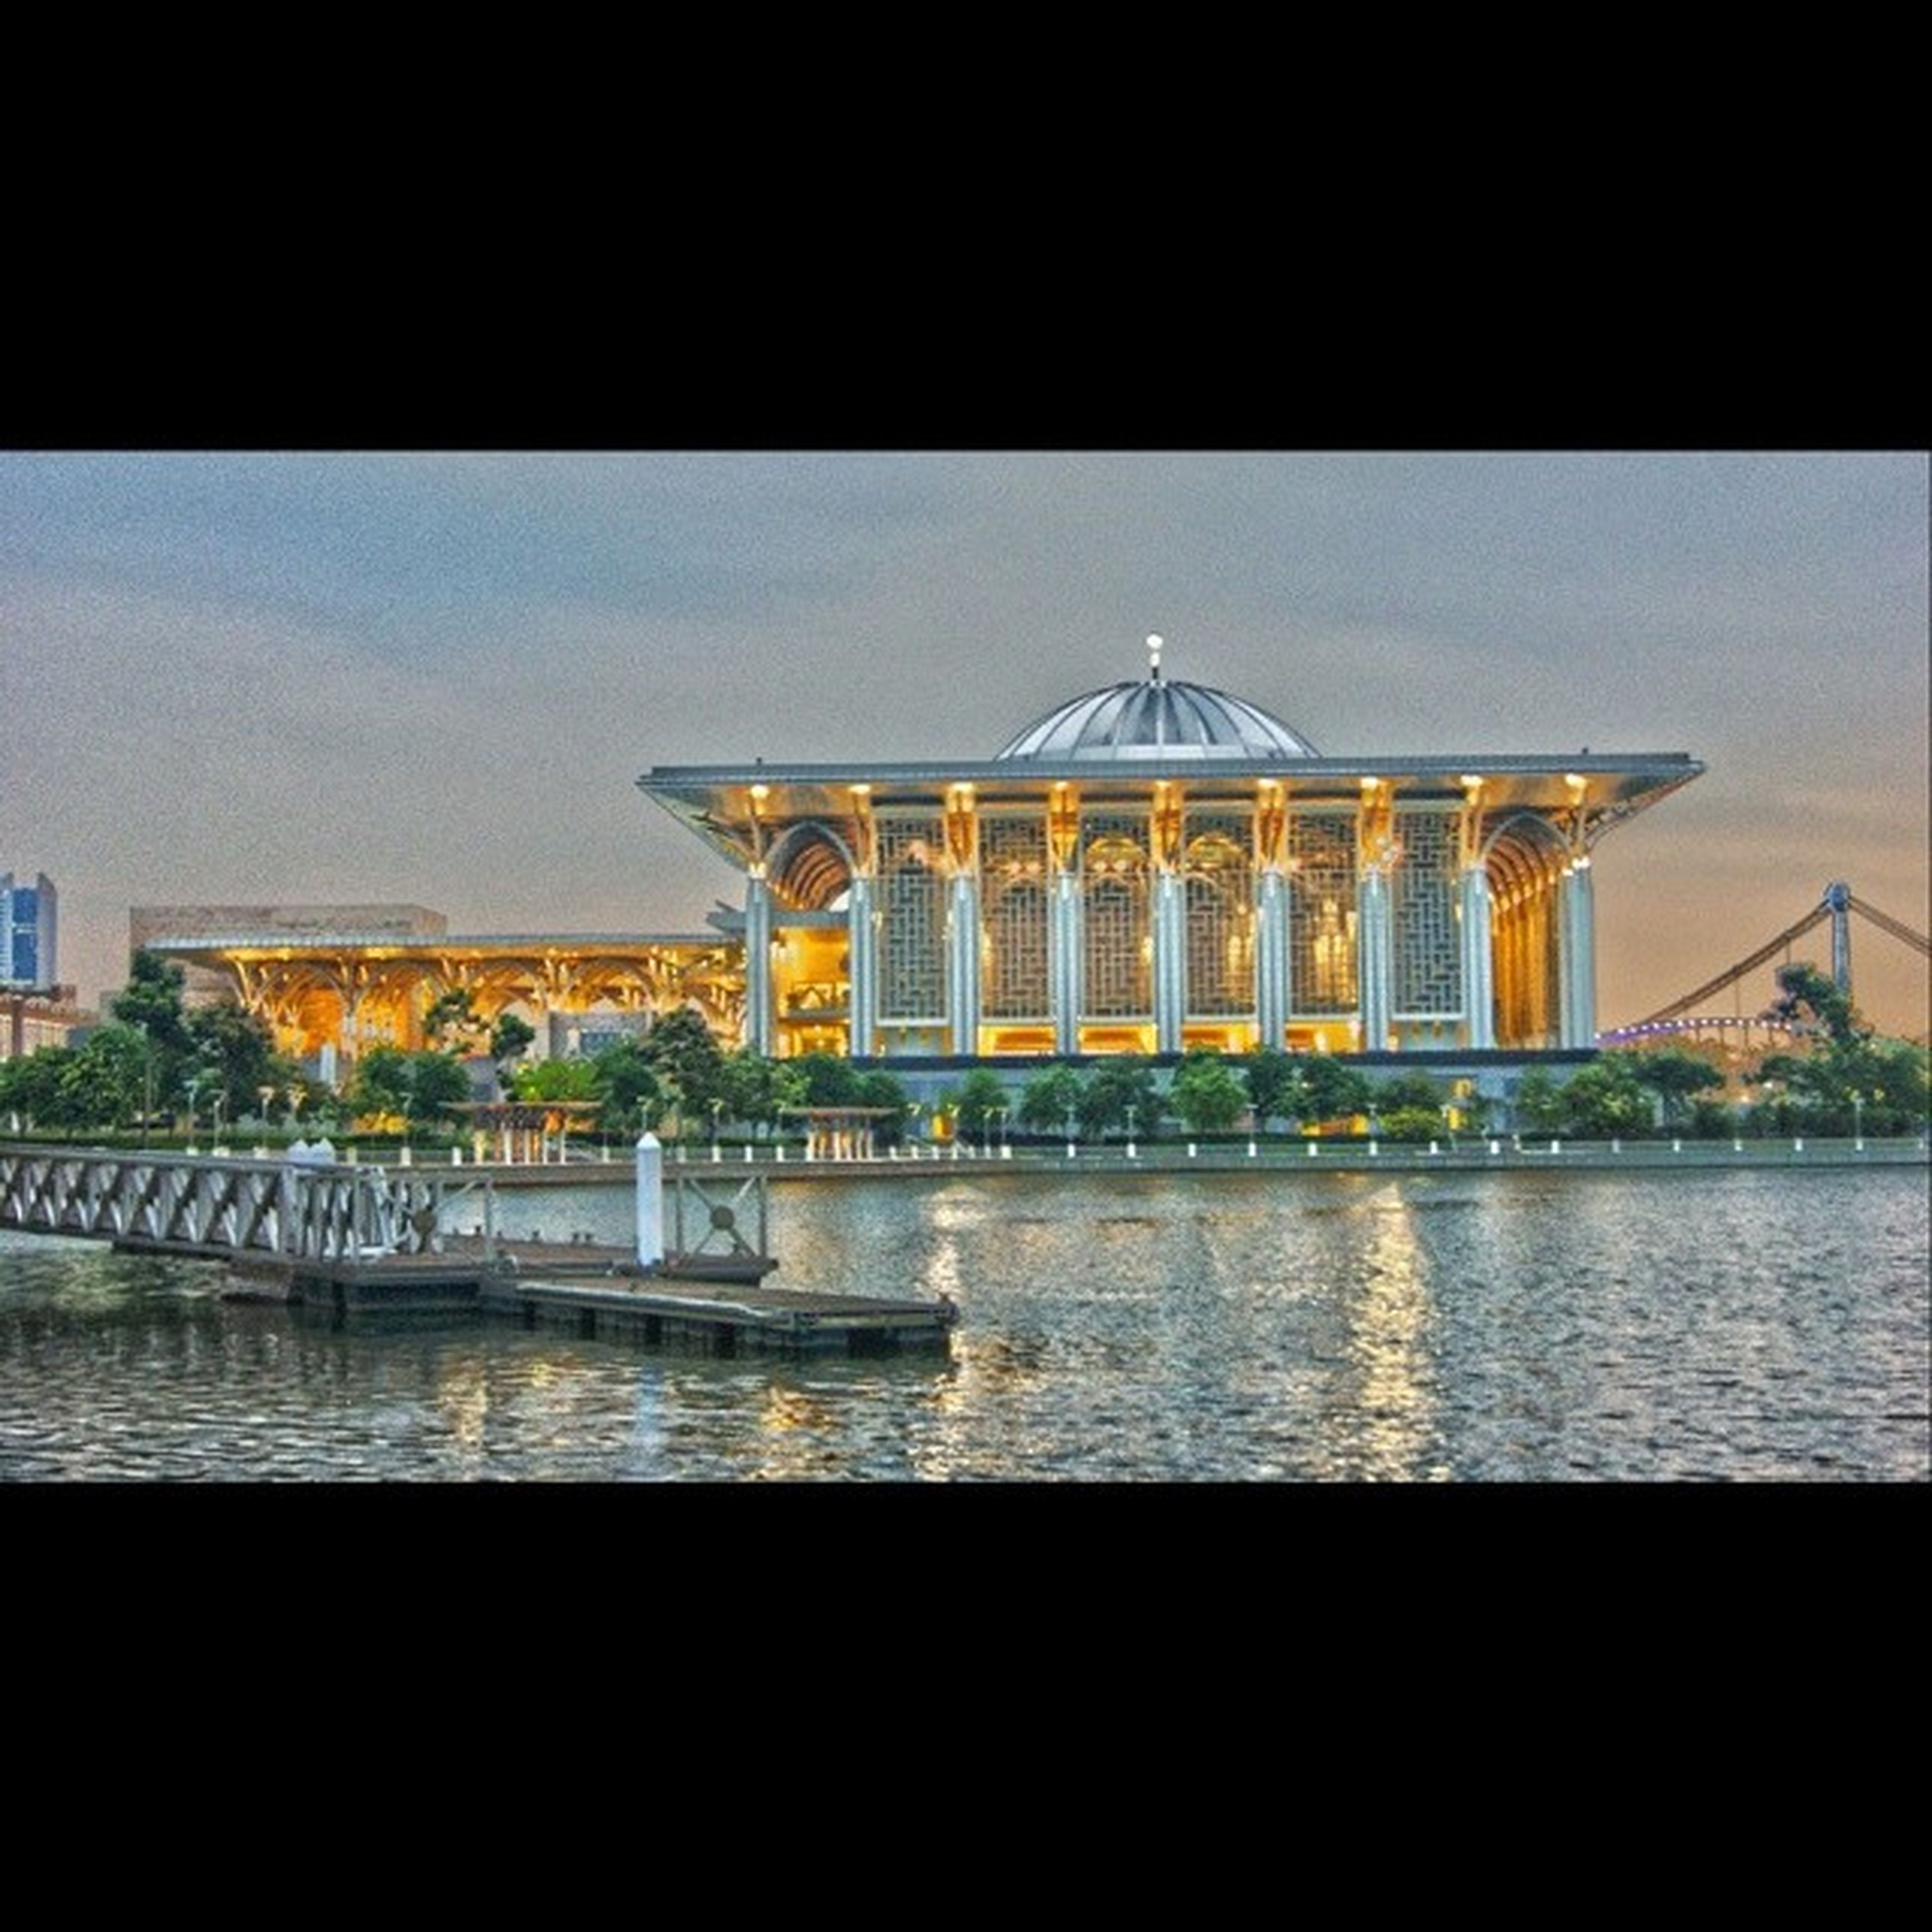 architecture, water, built structure, building exterior, transportation, night, reflection, bridge - man made structure, river, illuminated, connection, waterfront, clear sky, sky, outdoors, railing, travel, no people, auto post production filter, city